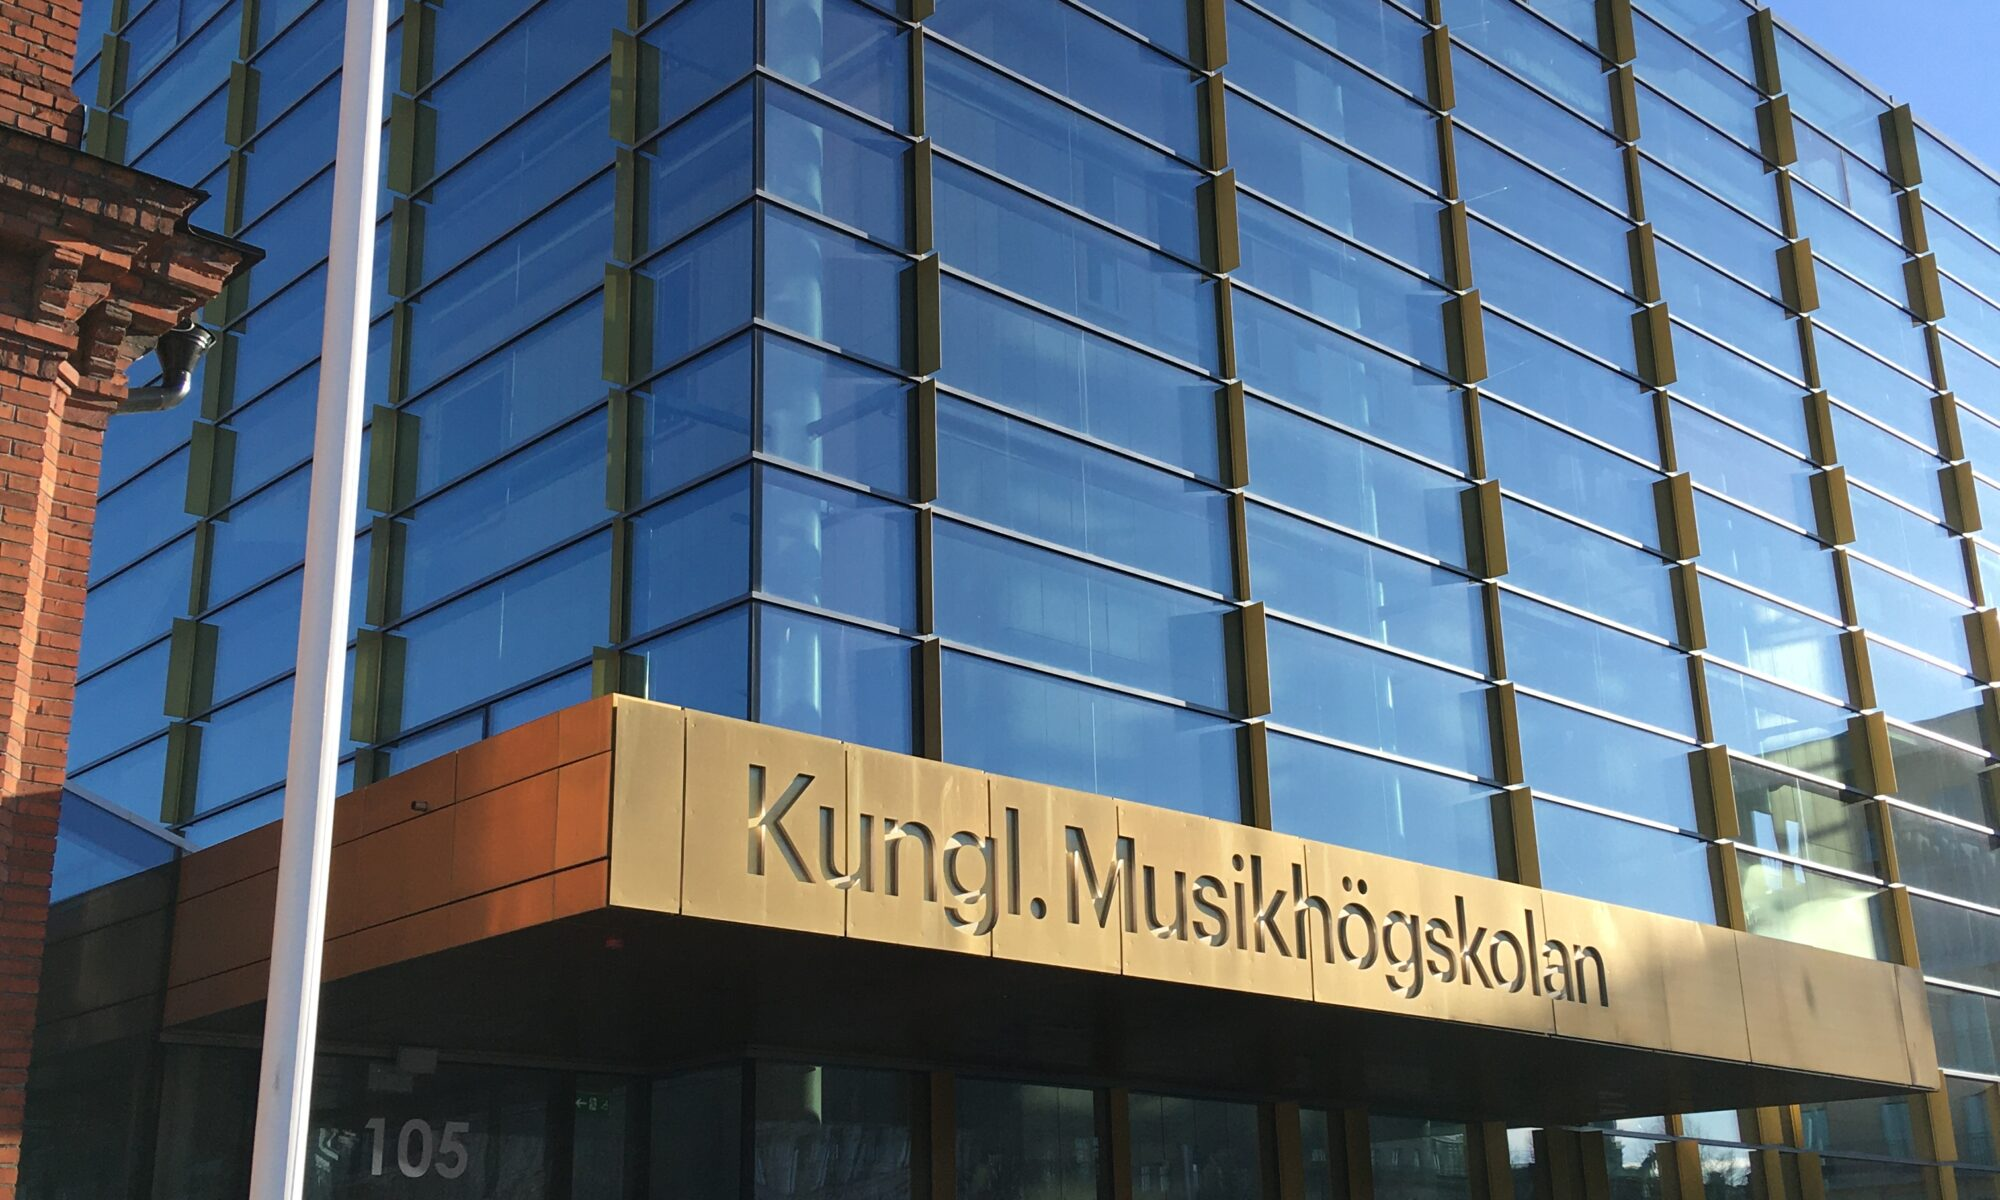 Entrance to the Royal College of Music in Stockholm, Sweden